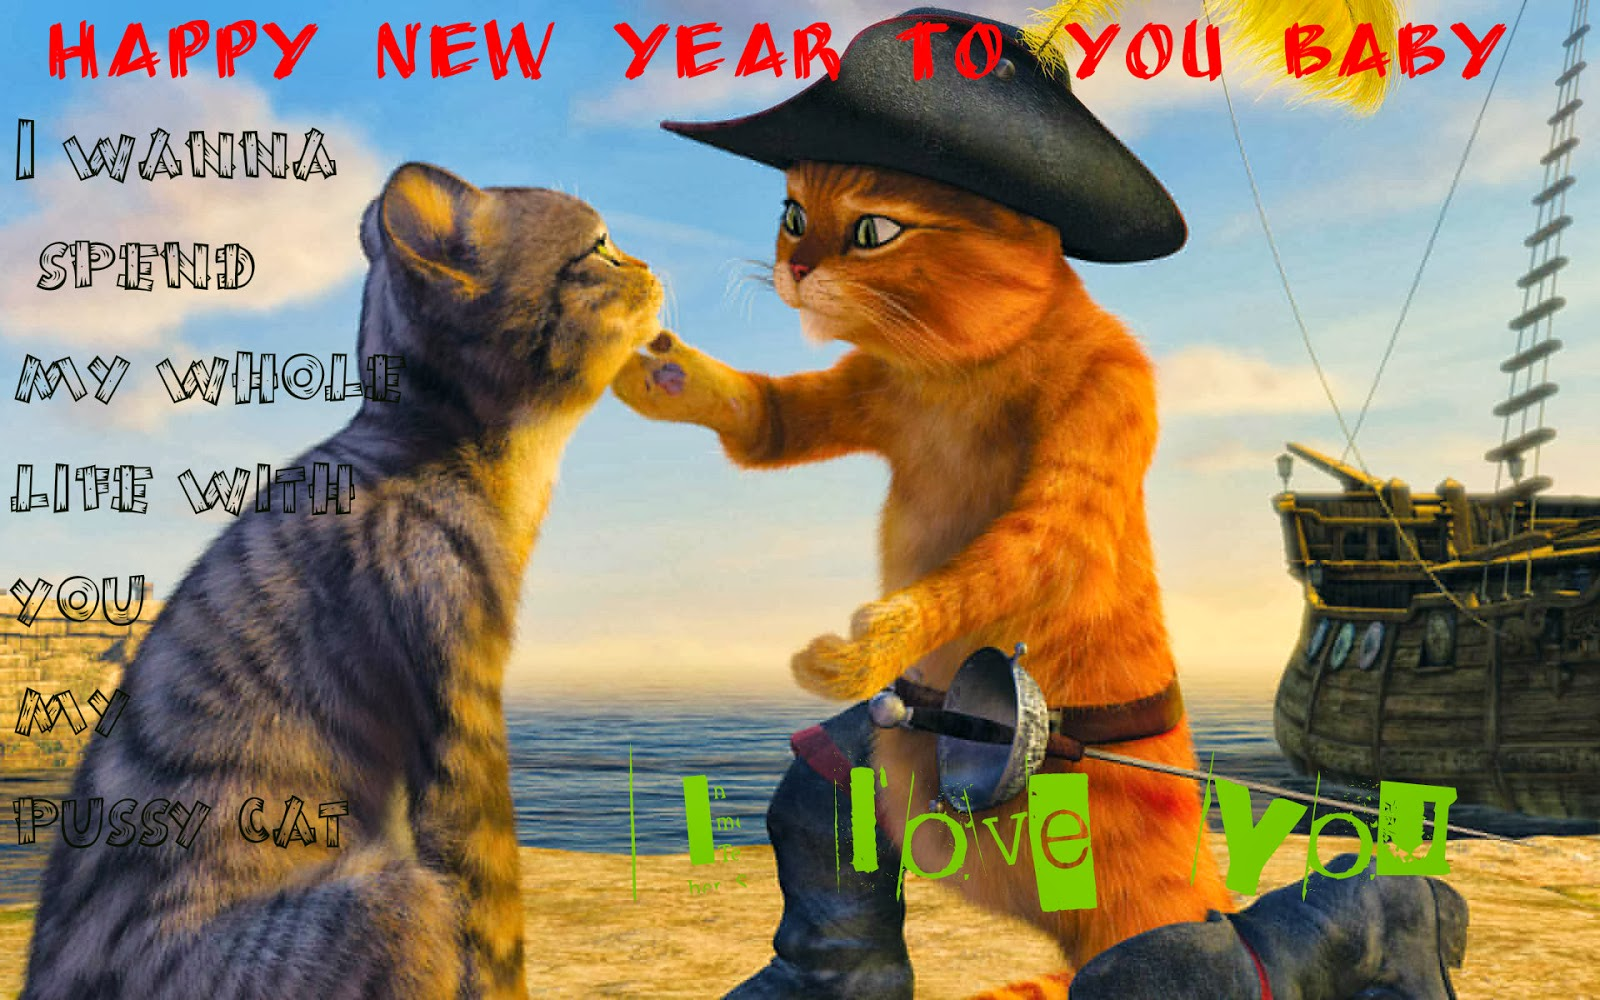 Latest Messages Sms For New Year 2014 Best Happy New Year 2014 Sms